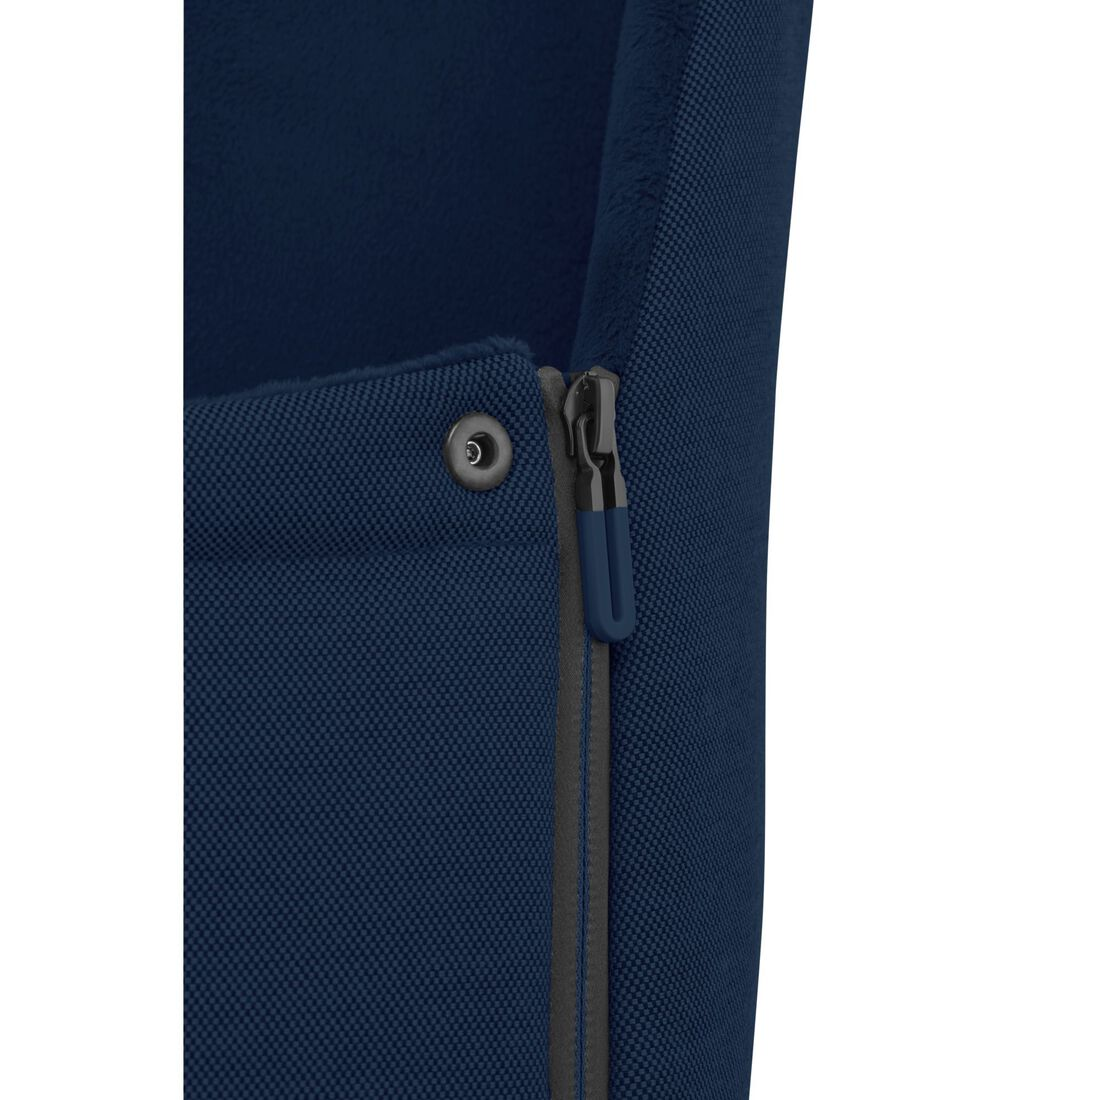 CYBEX Gold Footmuff - Navy Blue in Navy Blue large image number 2